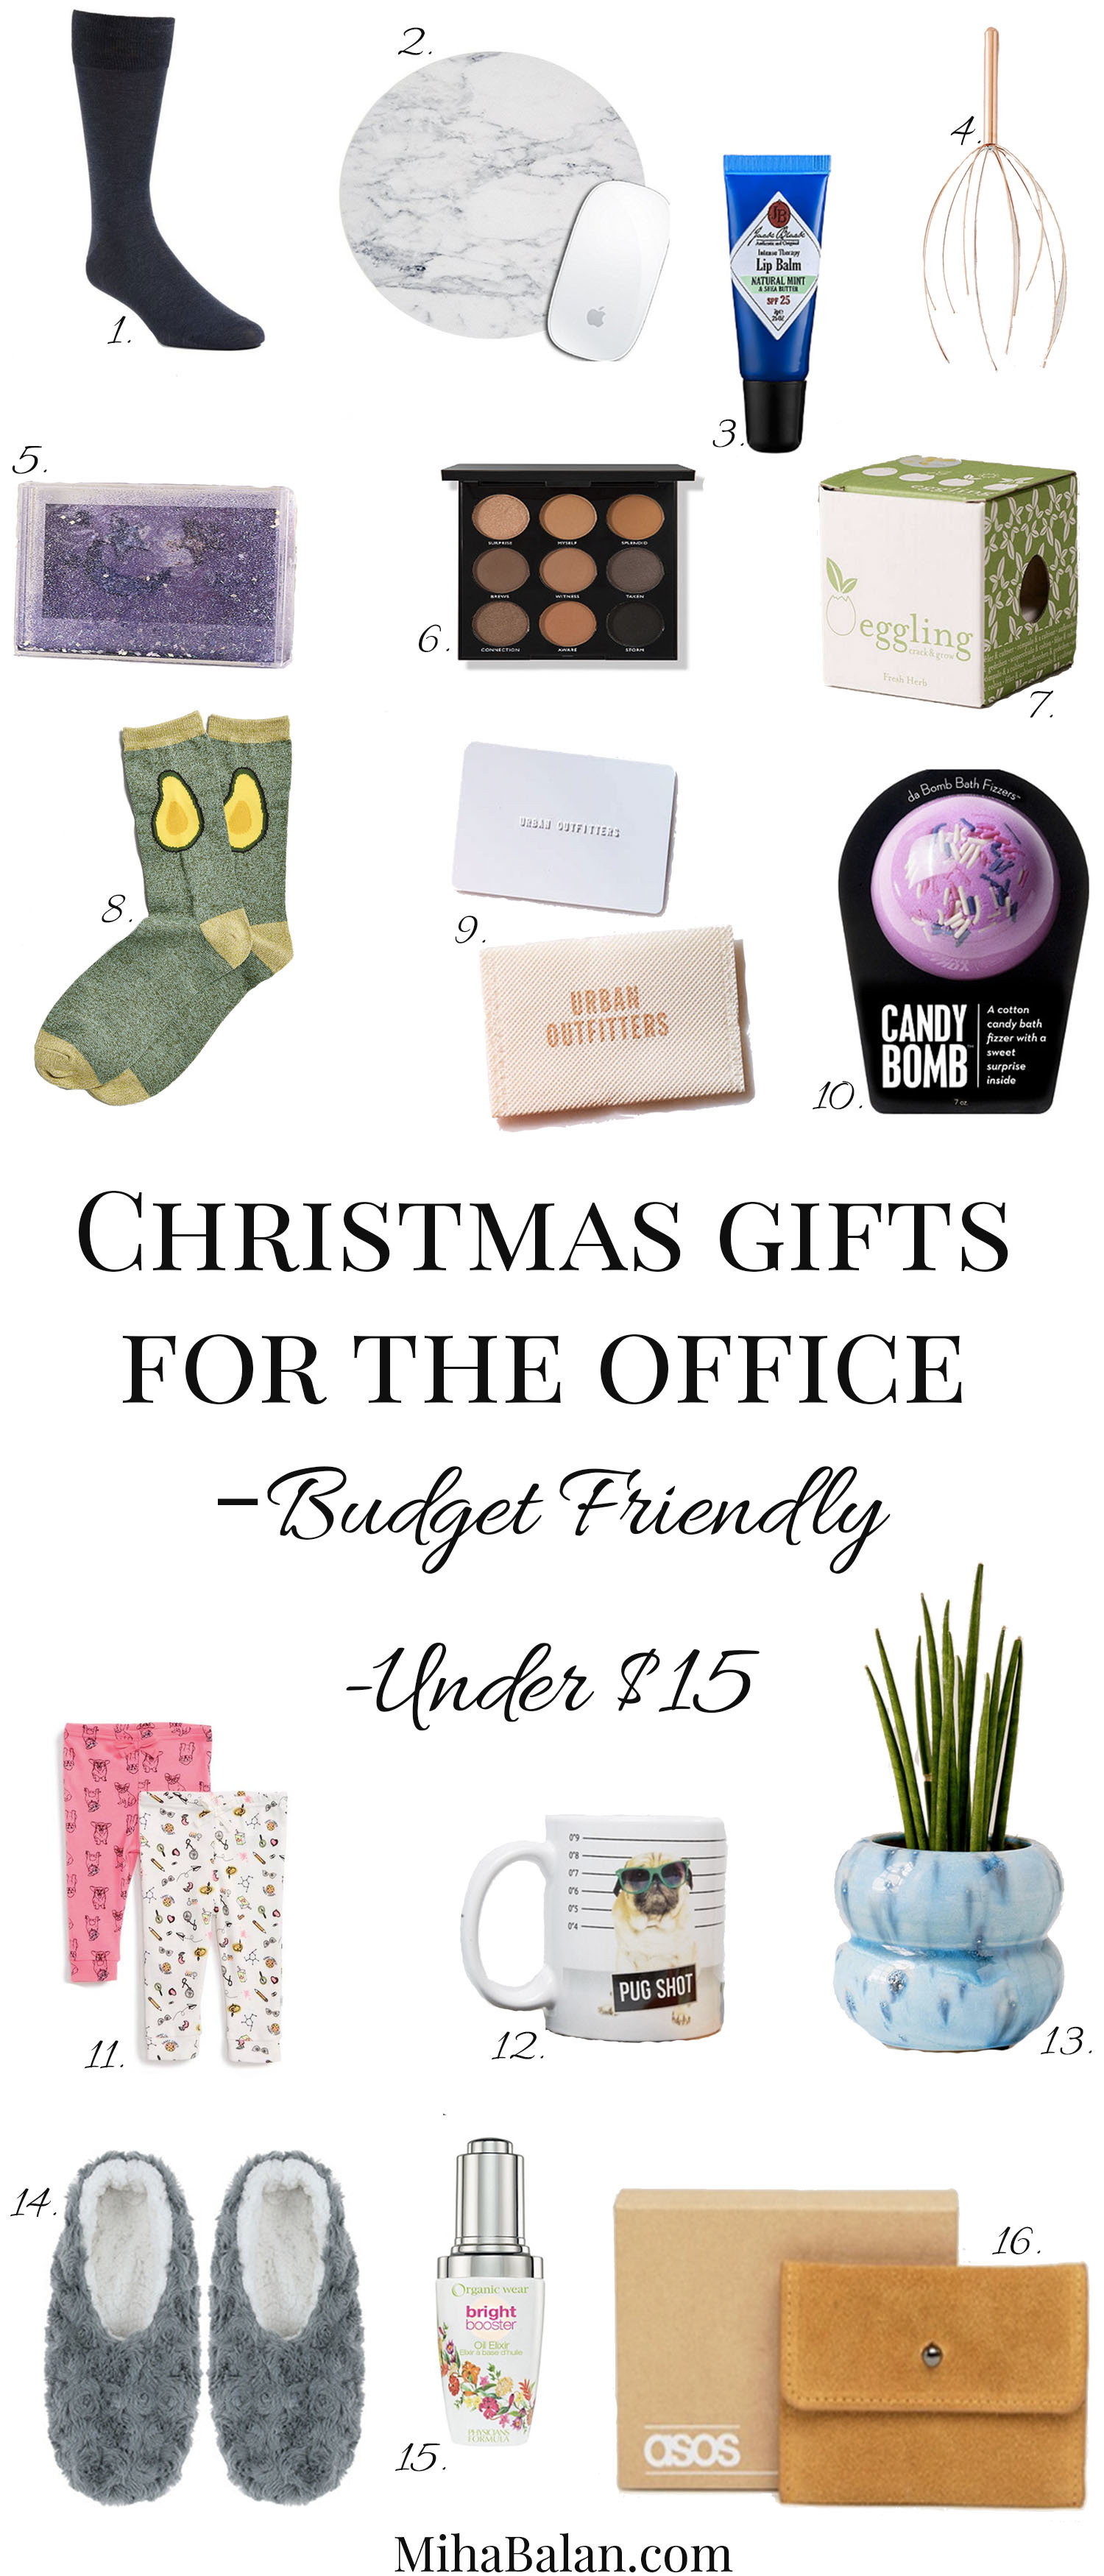 Christmas gifts for under $15 for coworkers, office, friends, best gifts, shop online for office